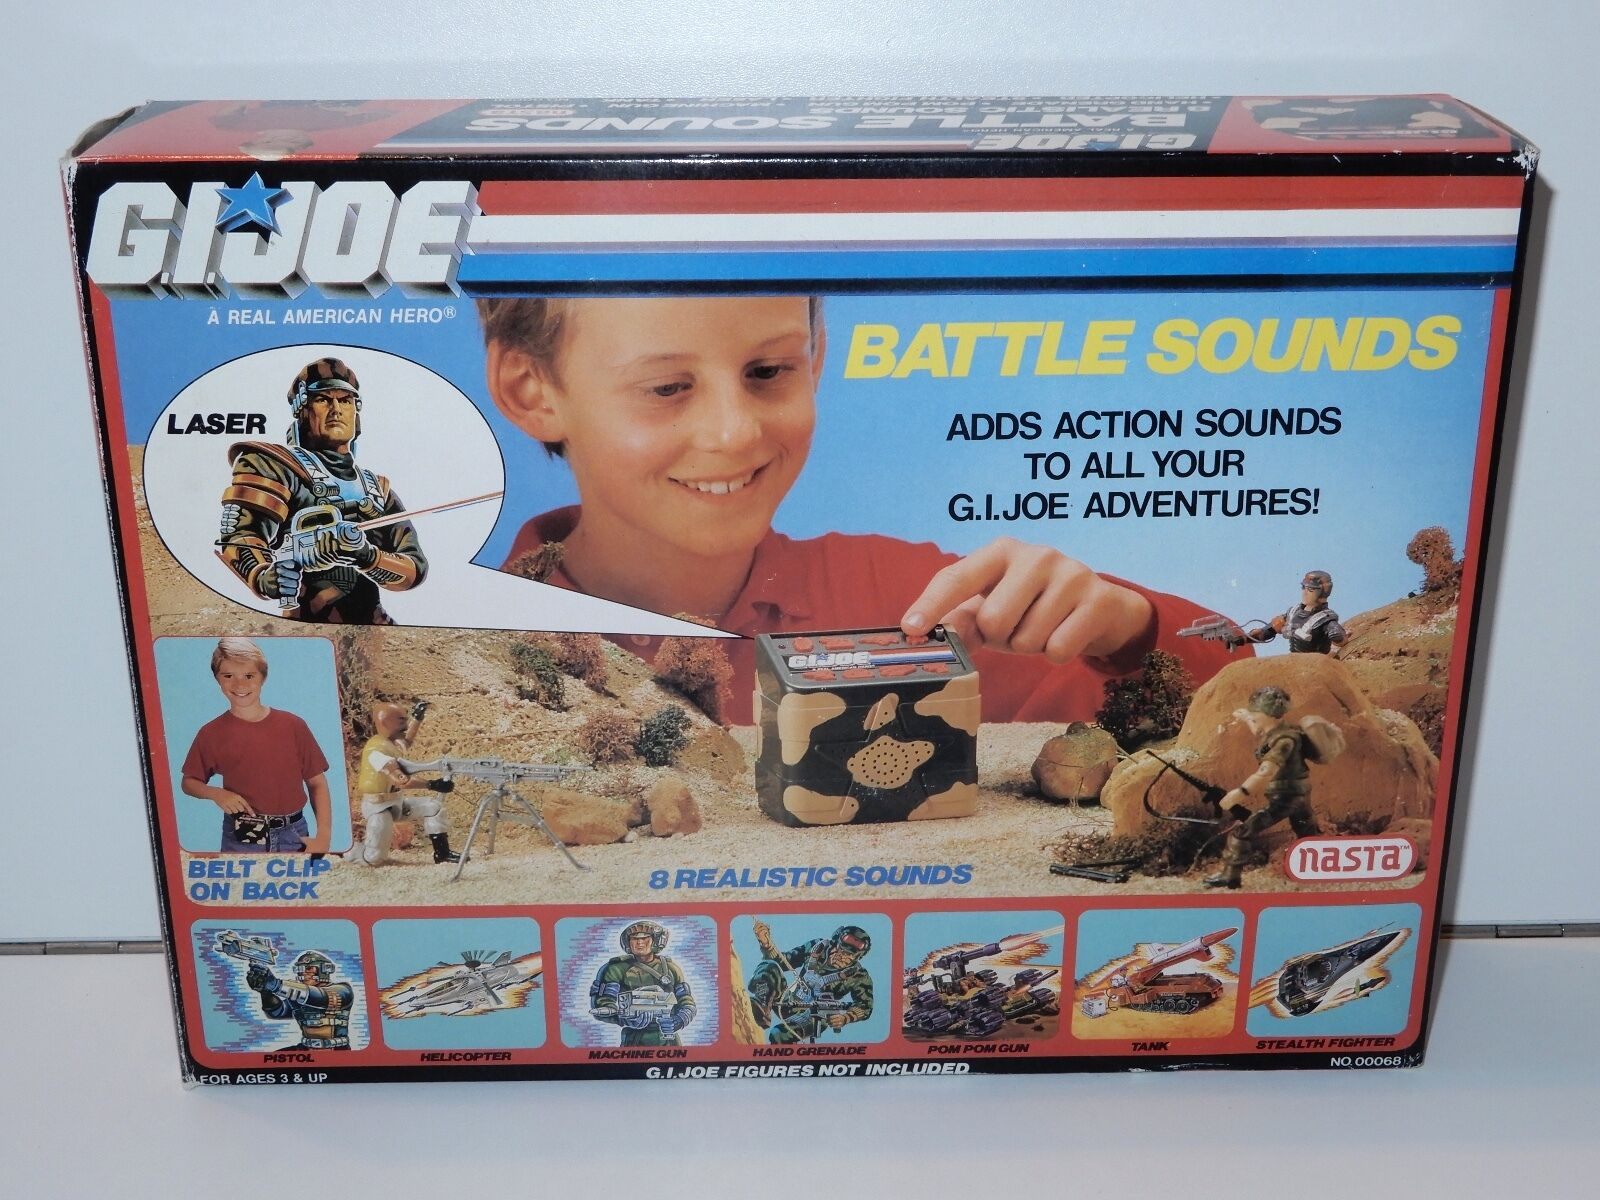 1988 GI JOE BATTLE SOUNDS MIB SEALED CONTENTS NRFB - NASTA